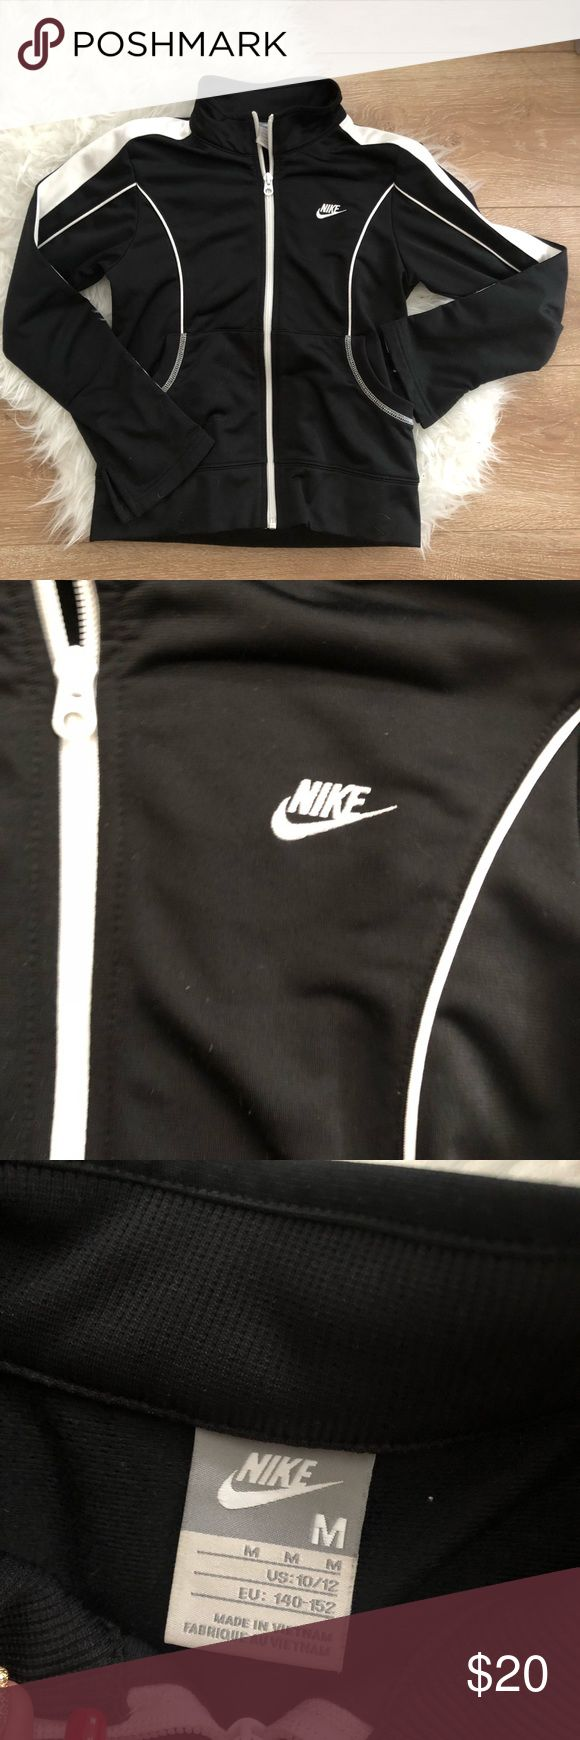 Nike sports jacket Super cute and trendy Nike sports jacket perfect for working out for just for throwing over a simple outfit for instant athlesure style!   This is a youth size medium so it best fits woman's xxs-xs  Mild piling on the back but other than that no flaws! Nike Jackets & Coats